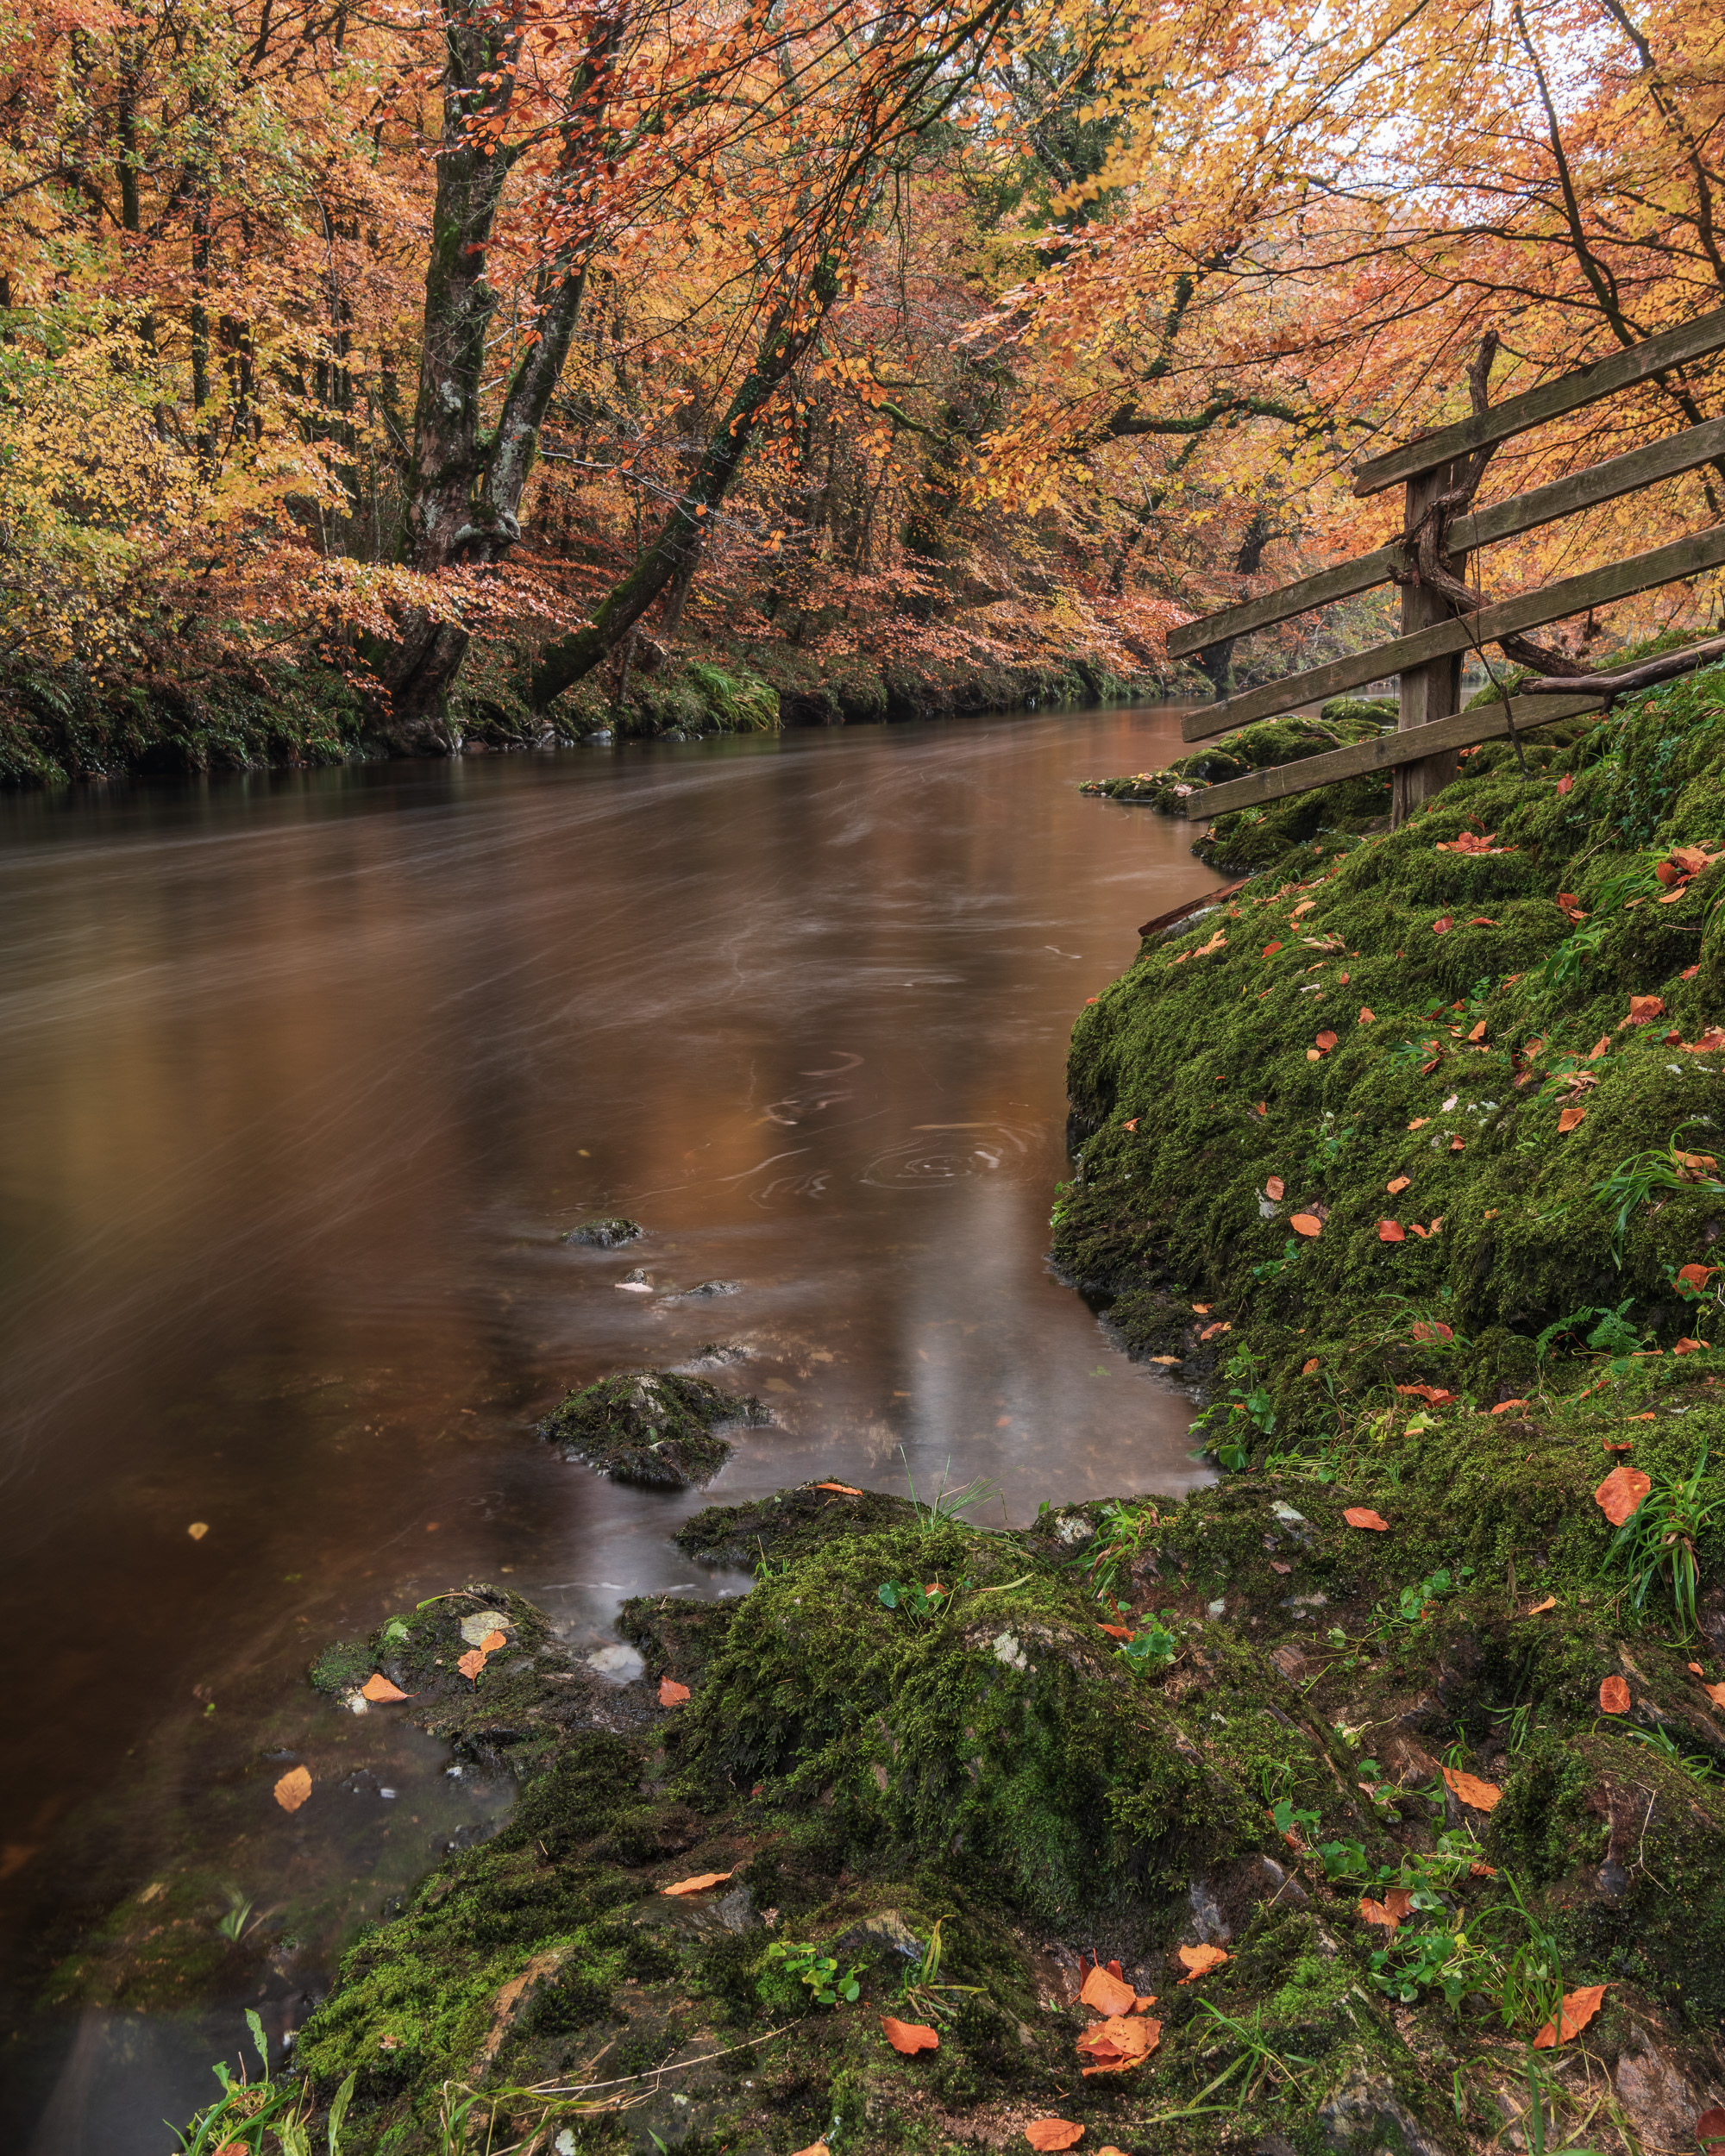 Autumn on the River Dart, Dartmoor, Devon  - Nikon D850, Nikkor 24-70 mm f/2.8 VR at 25 mm, f/13, 10 seconds at ISO 64, Lee Filters Circular Polariser and ND Grad.